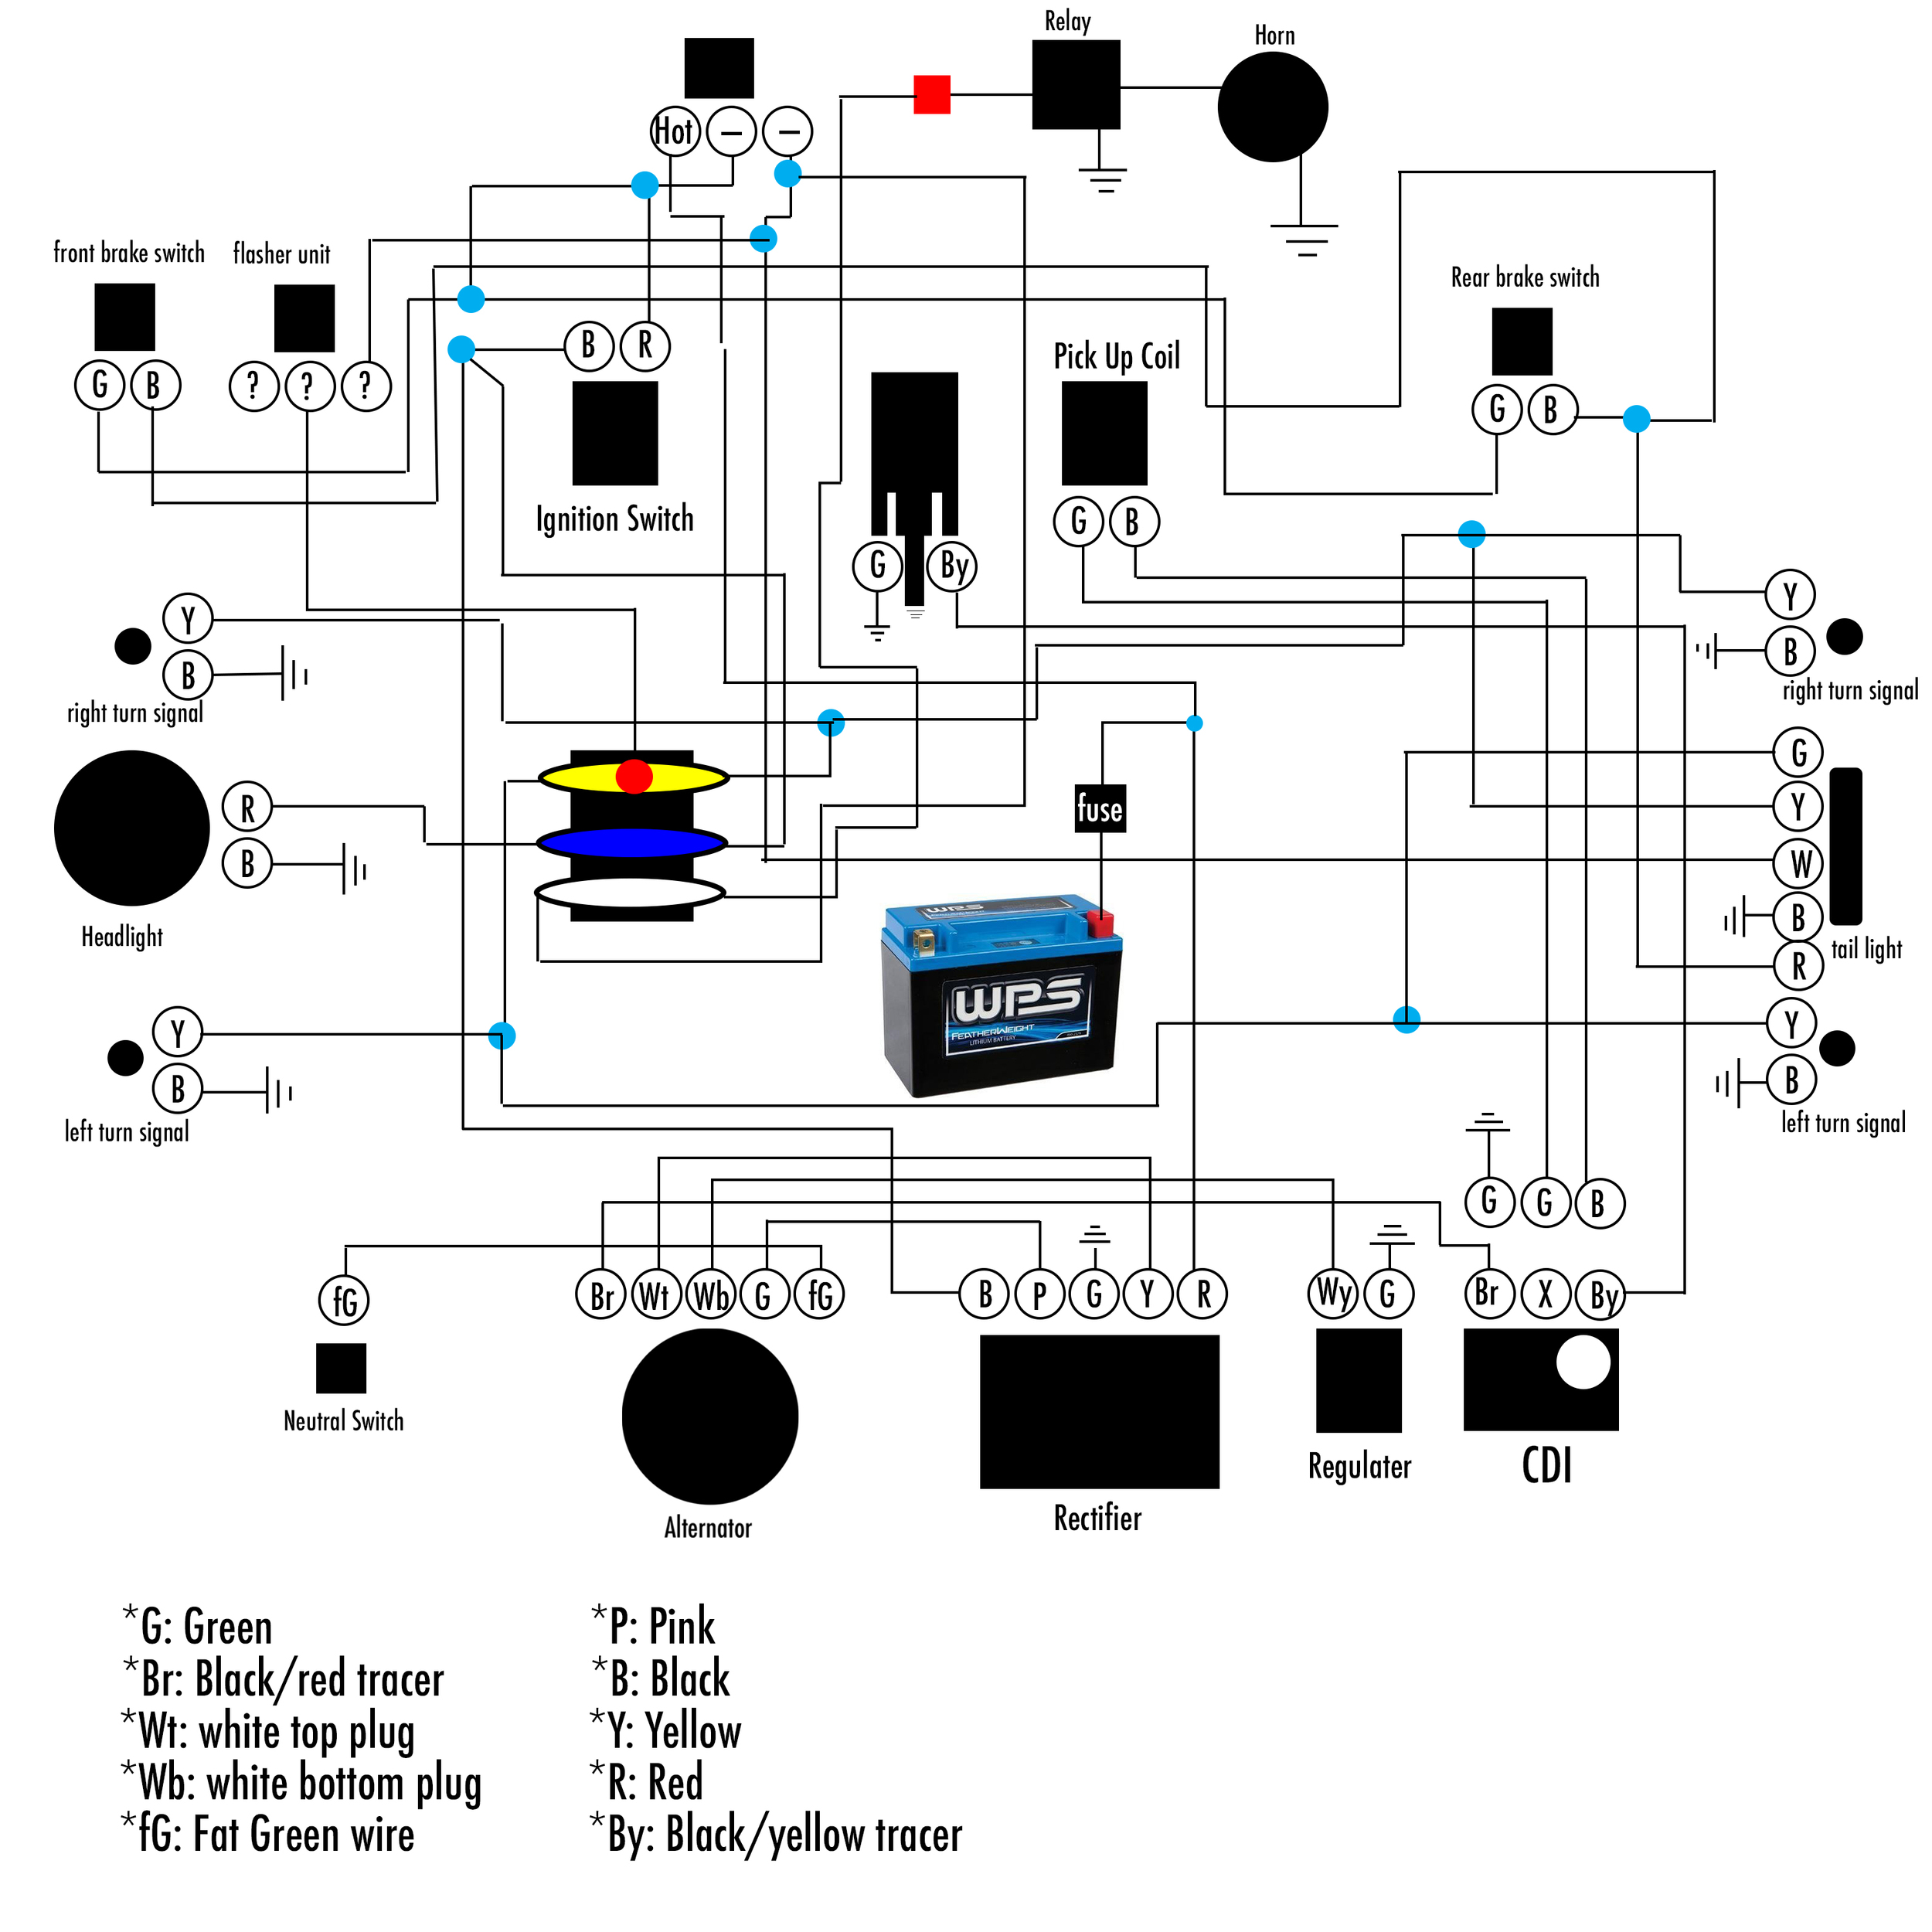 medium resolution of honda xl600 r wiring diagram